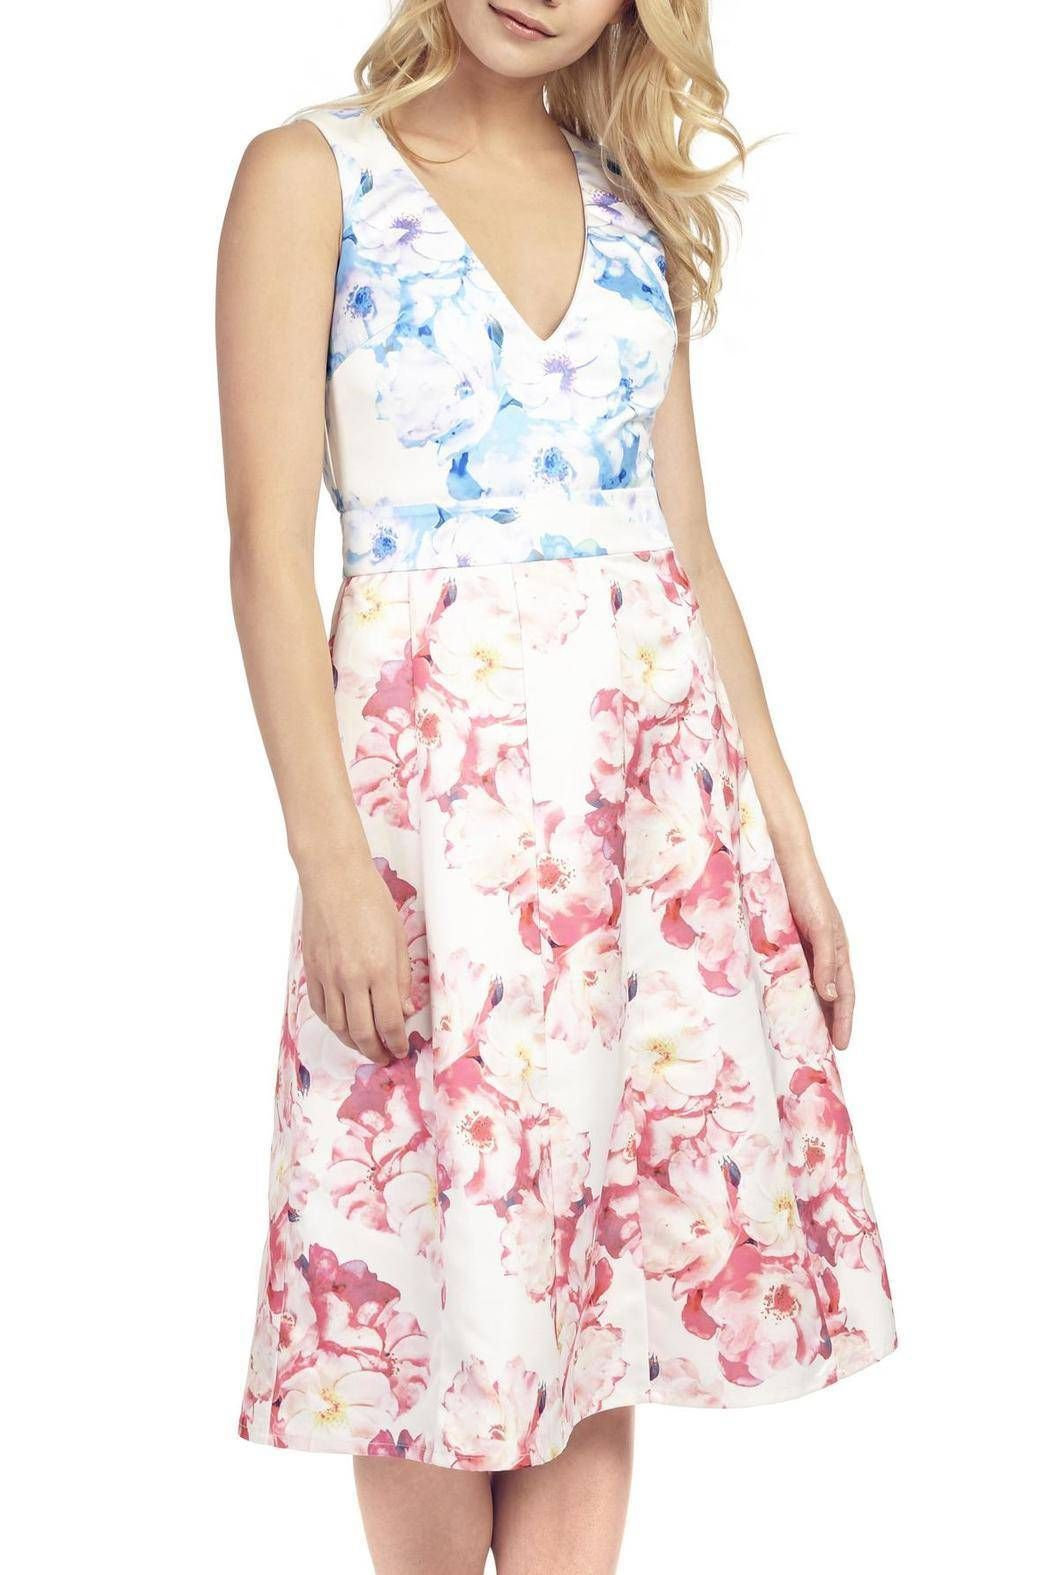 The Blue & Peach Floral Dress is made from contrasting watercolour prints on a thick, matt fabric. The low V neckline, cheeky back cut out and mid length A-line skirt make this a perfect dress for weddings, and summer parties. Mid length. Concealed zip fastening. Model is 5'8 and is wearing UK size 8. Thick, matt fabric. Hand wash. UK Sizing   Watercolour Flora Dress by Princess Angel Star. Clothing - Dresses - Printed Clothing - Dresses - Wedding Wear Clothing - Dresses - Floral Clothing…